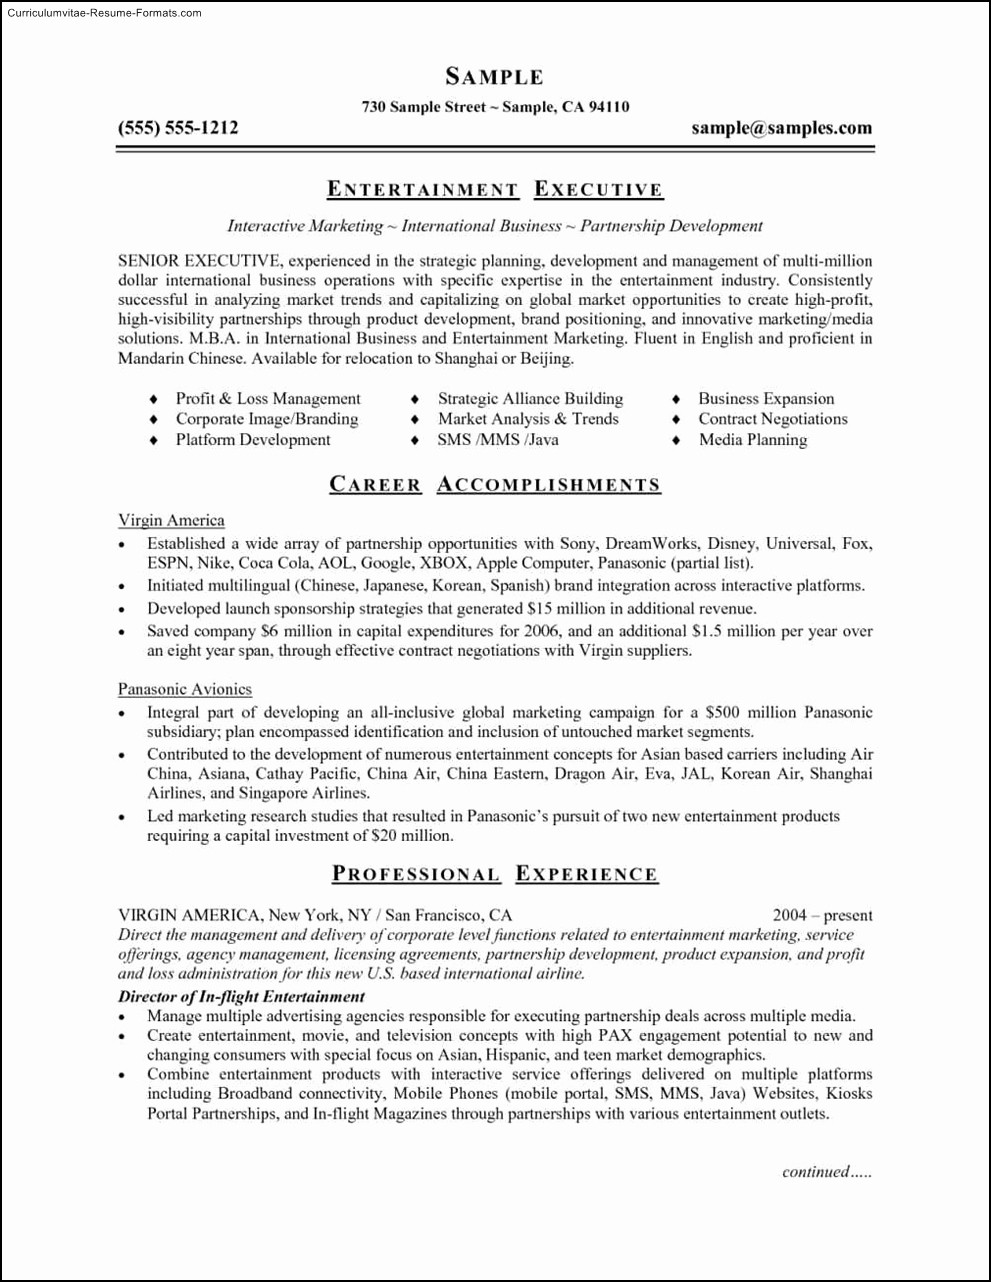 Resume Templates Download Microsoft Word Lovely Microsoft Word 2003 Resume Template Free Download Free